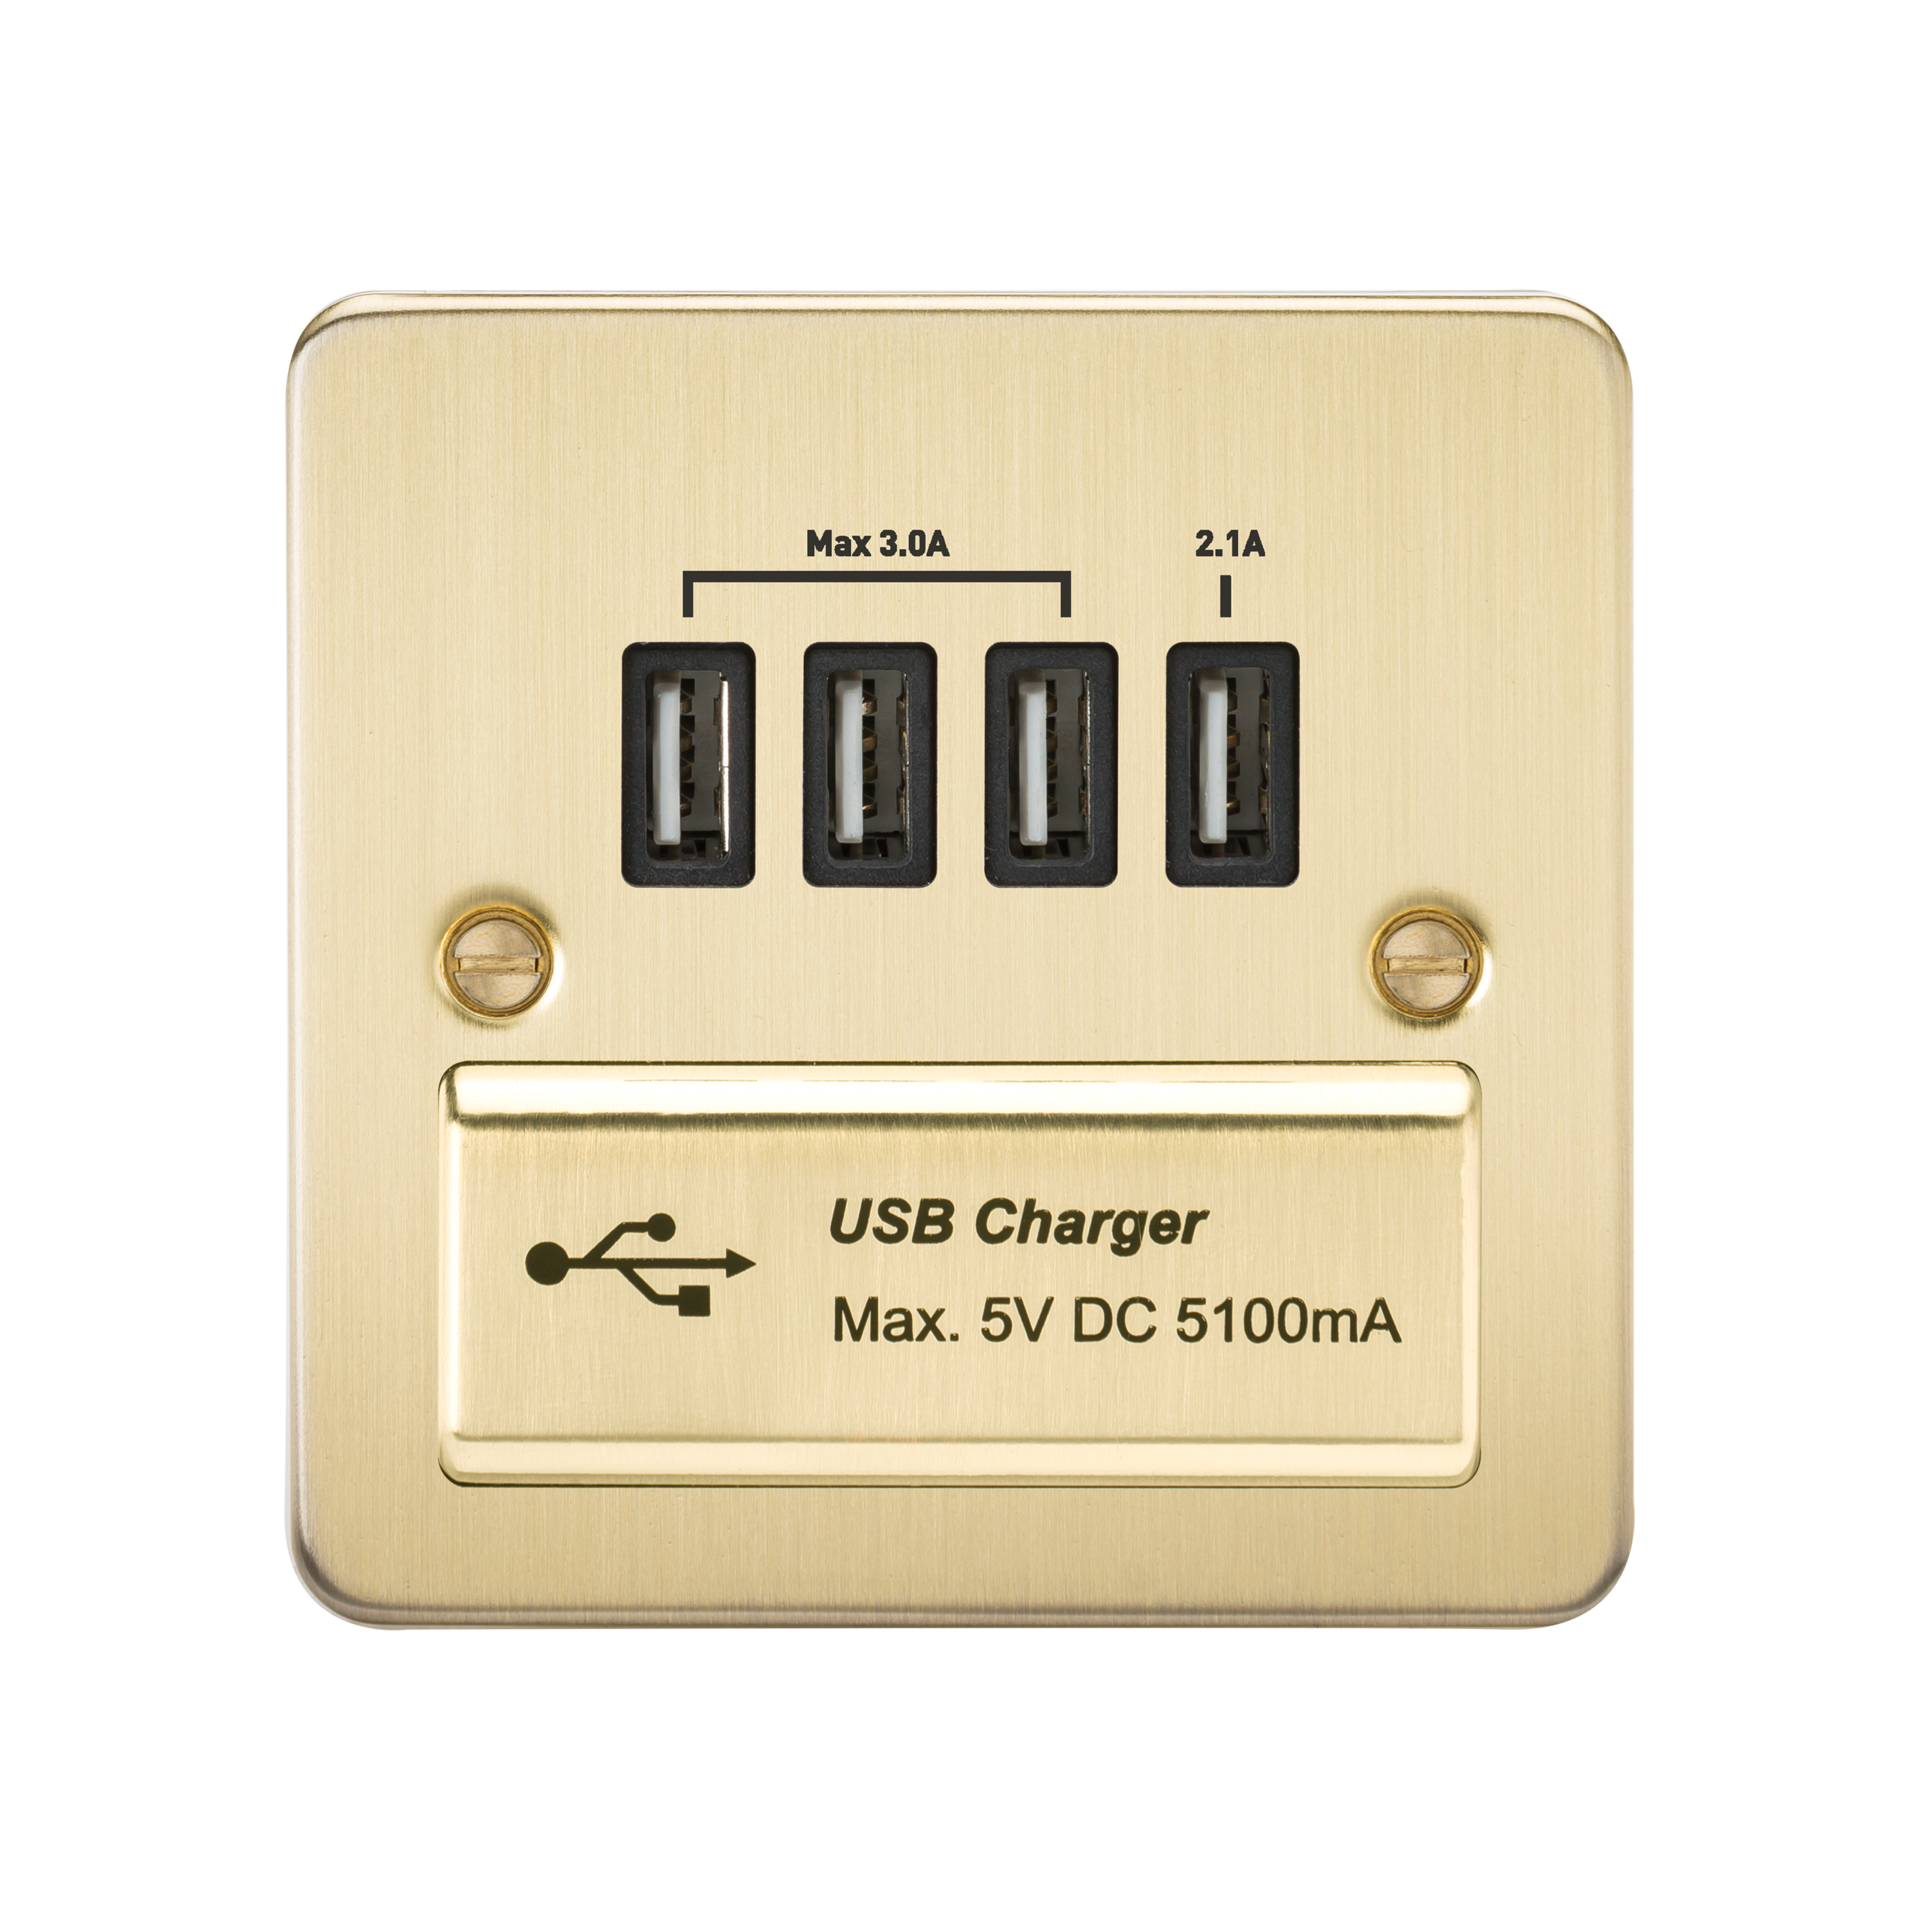 FLAT PLATE 1G QUAD USB CHARGER OUTLET 5V DC 5.1A - BRUSHED BRASS WITH BLACK INSERT